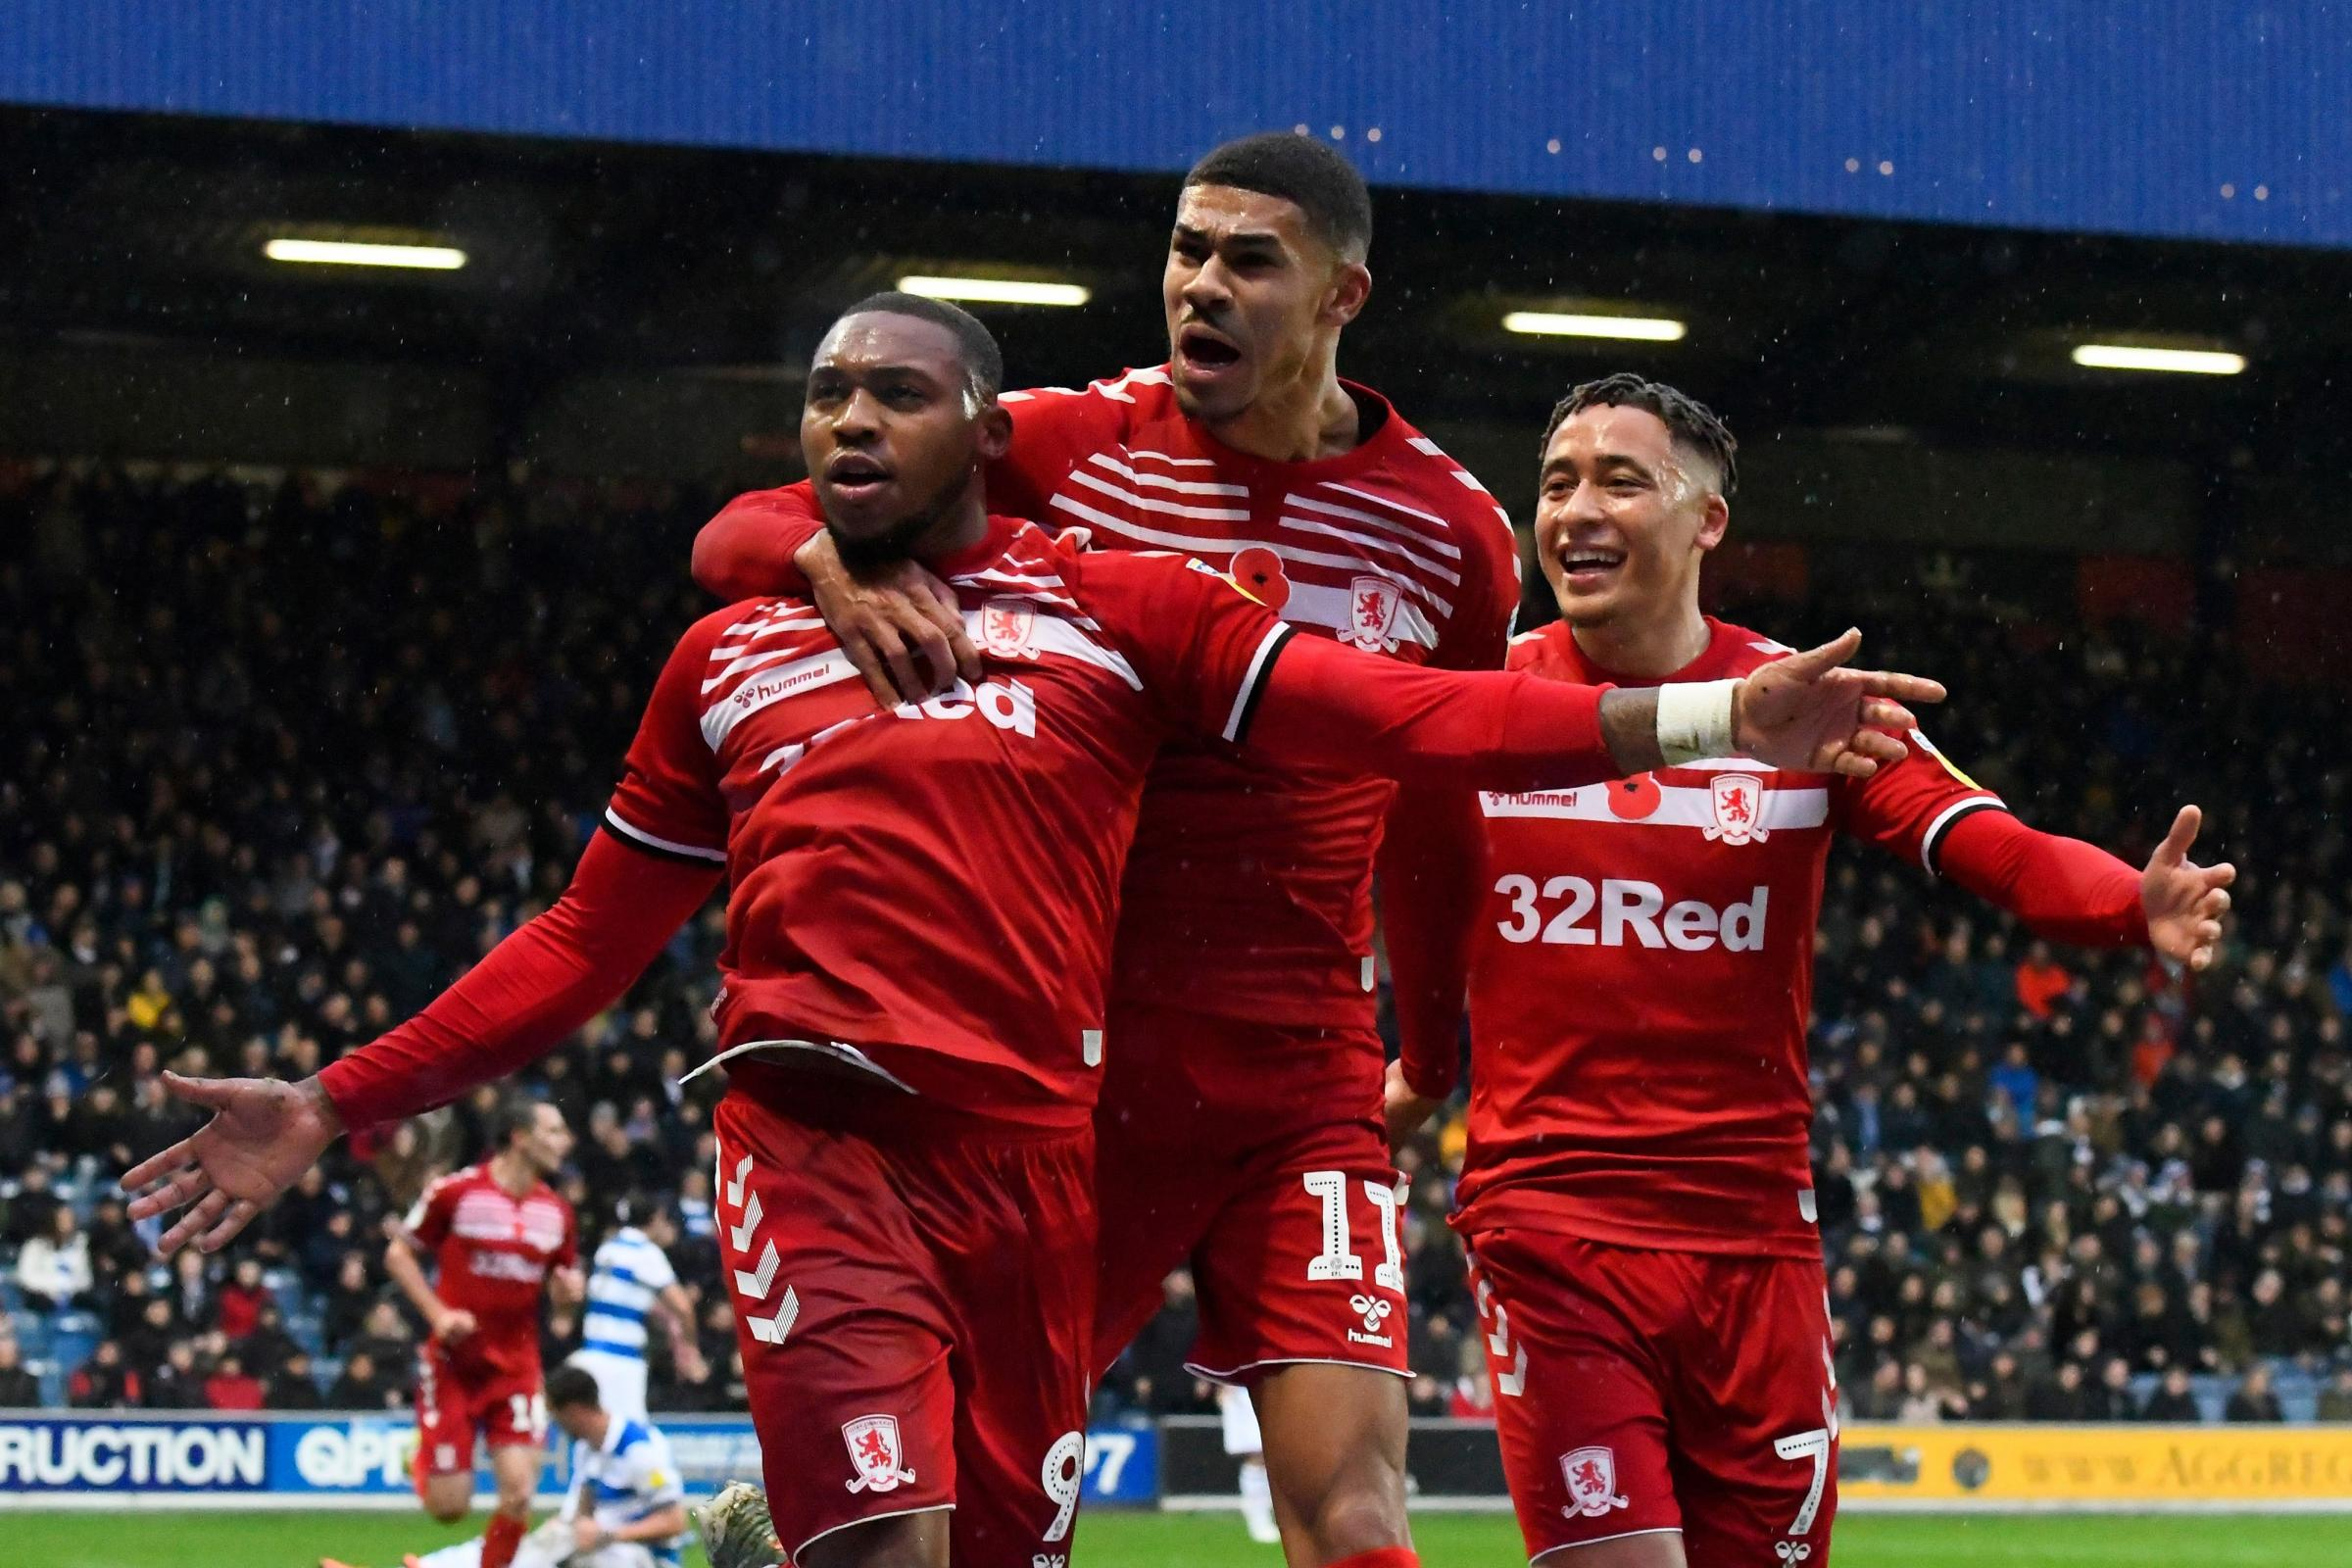 Middlesbrough's returning stars help secure a 2-2 draw at QPR